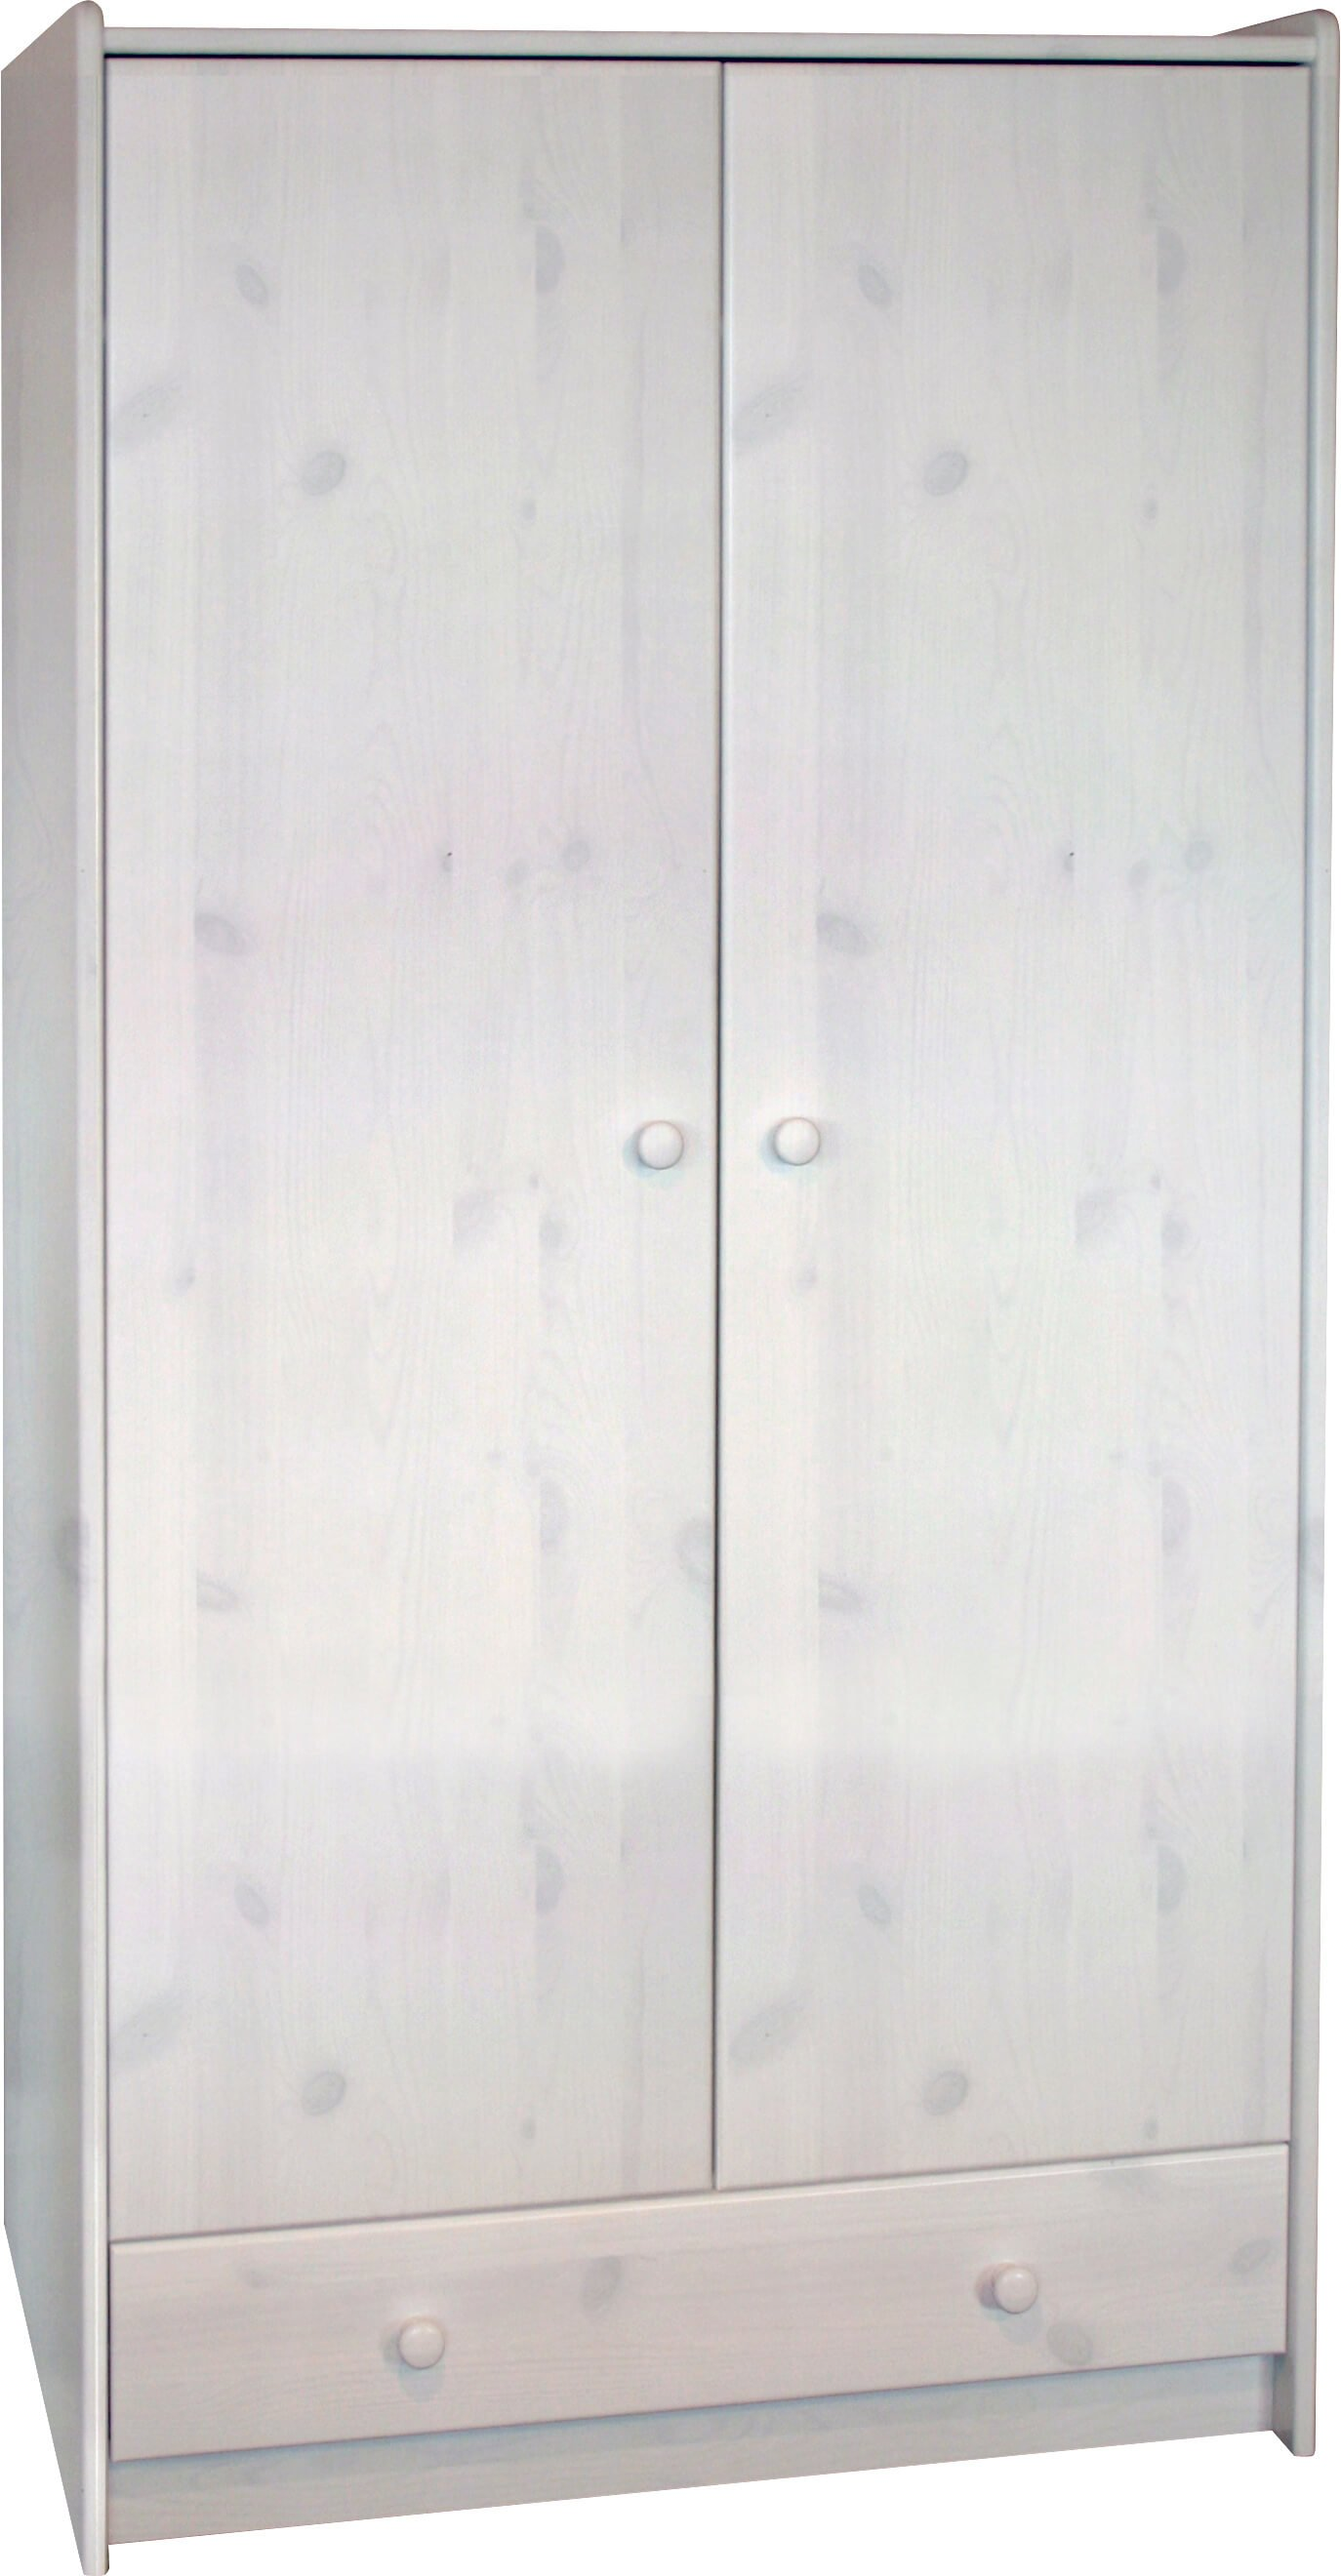 2 Door 1 Drawer Tall Wardrobe